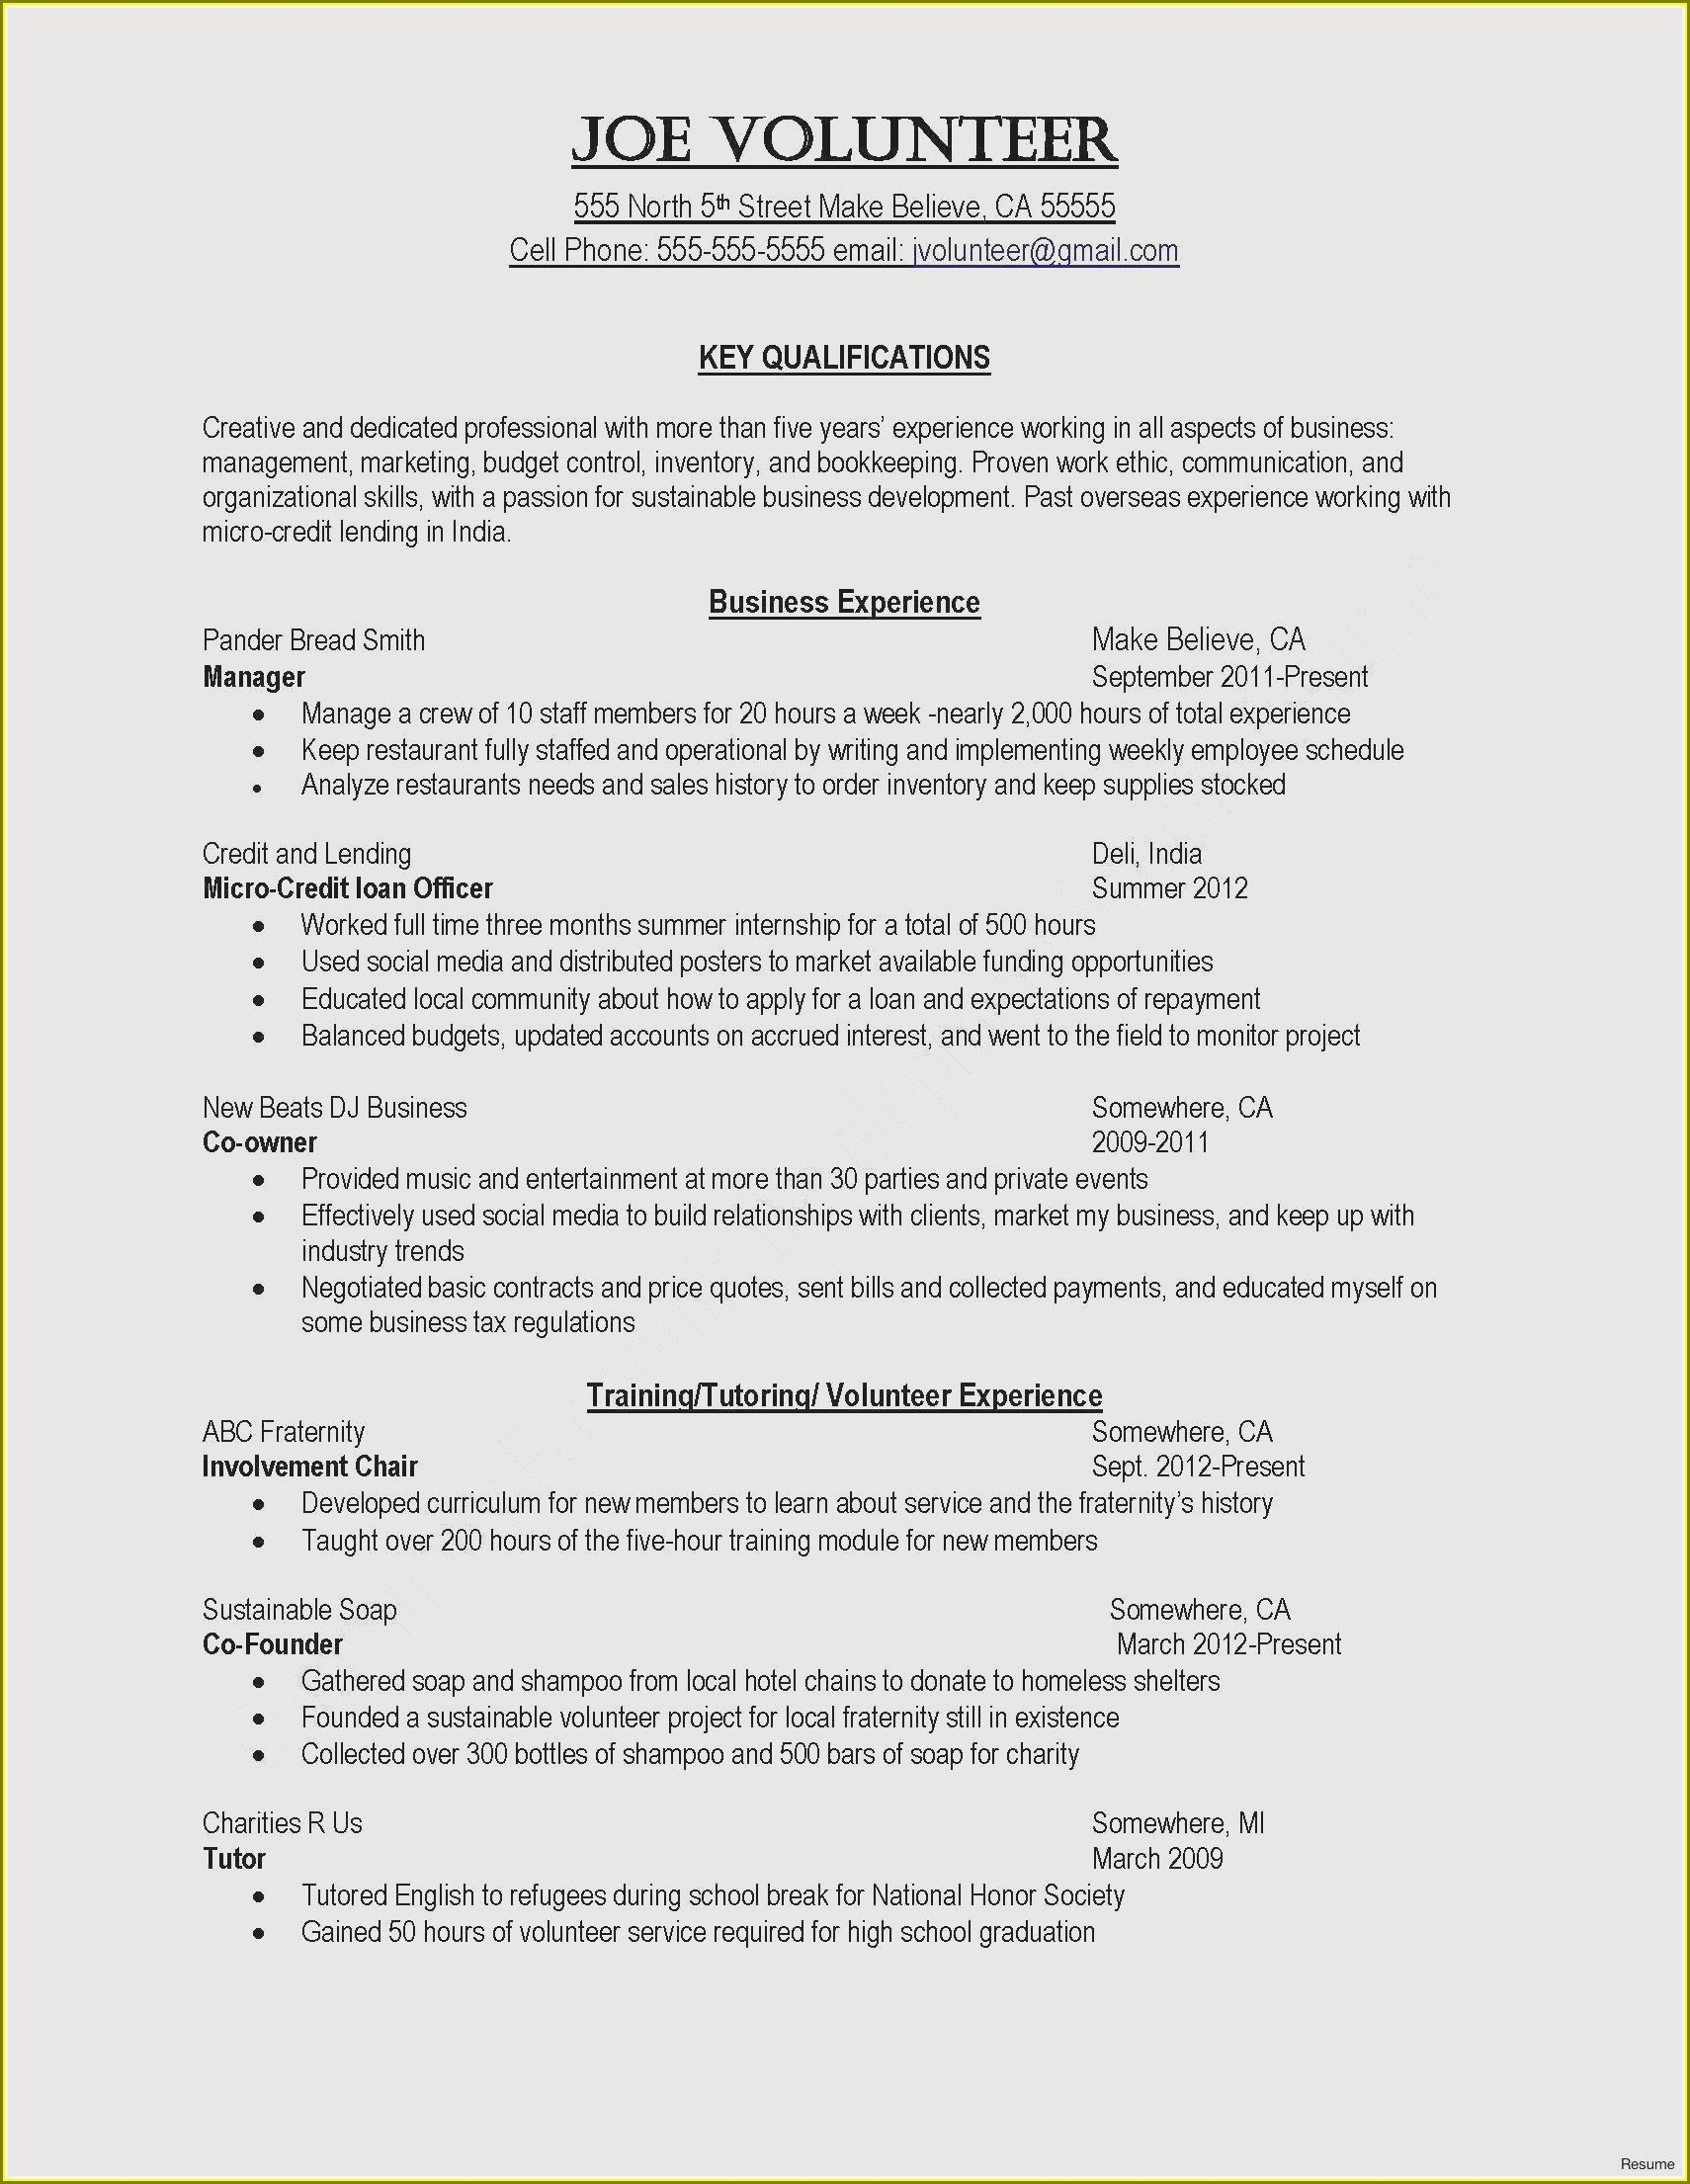 Resume Samples For Accountant In India